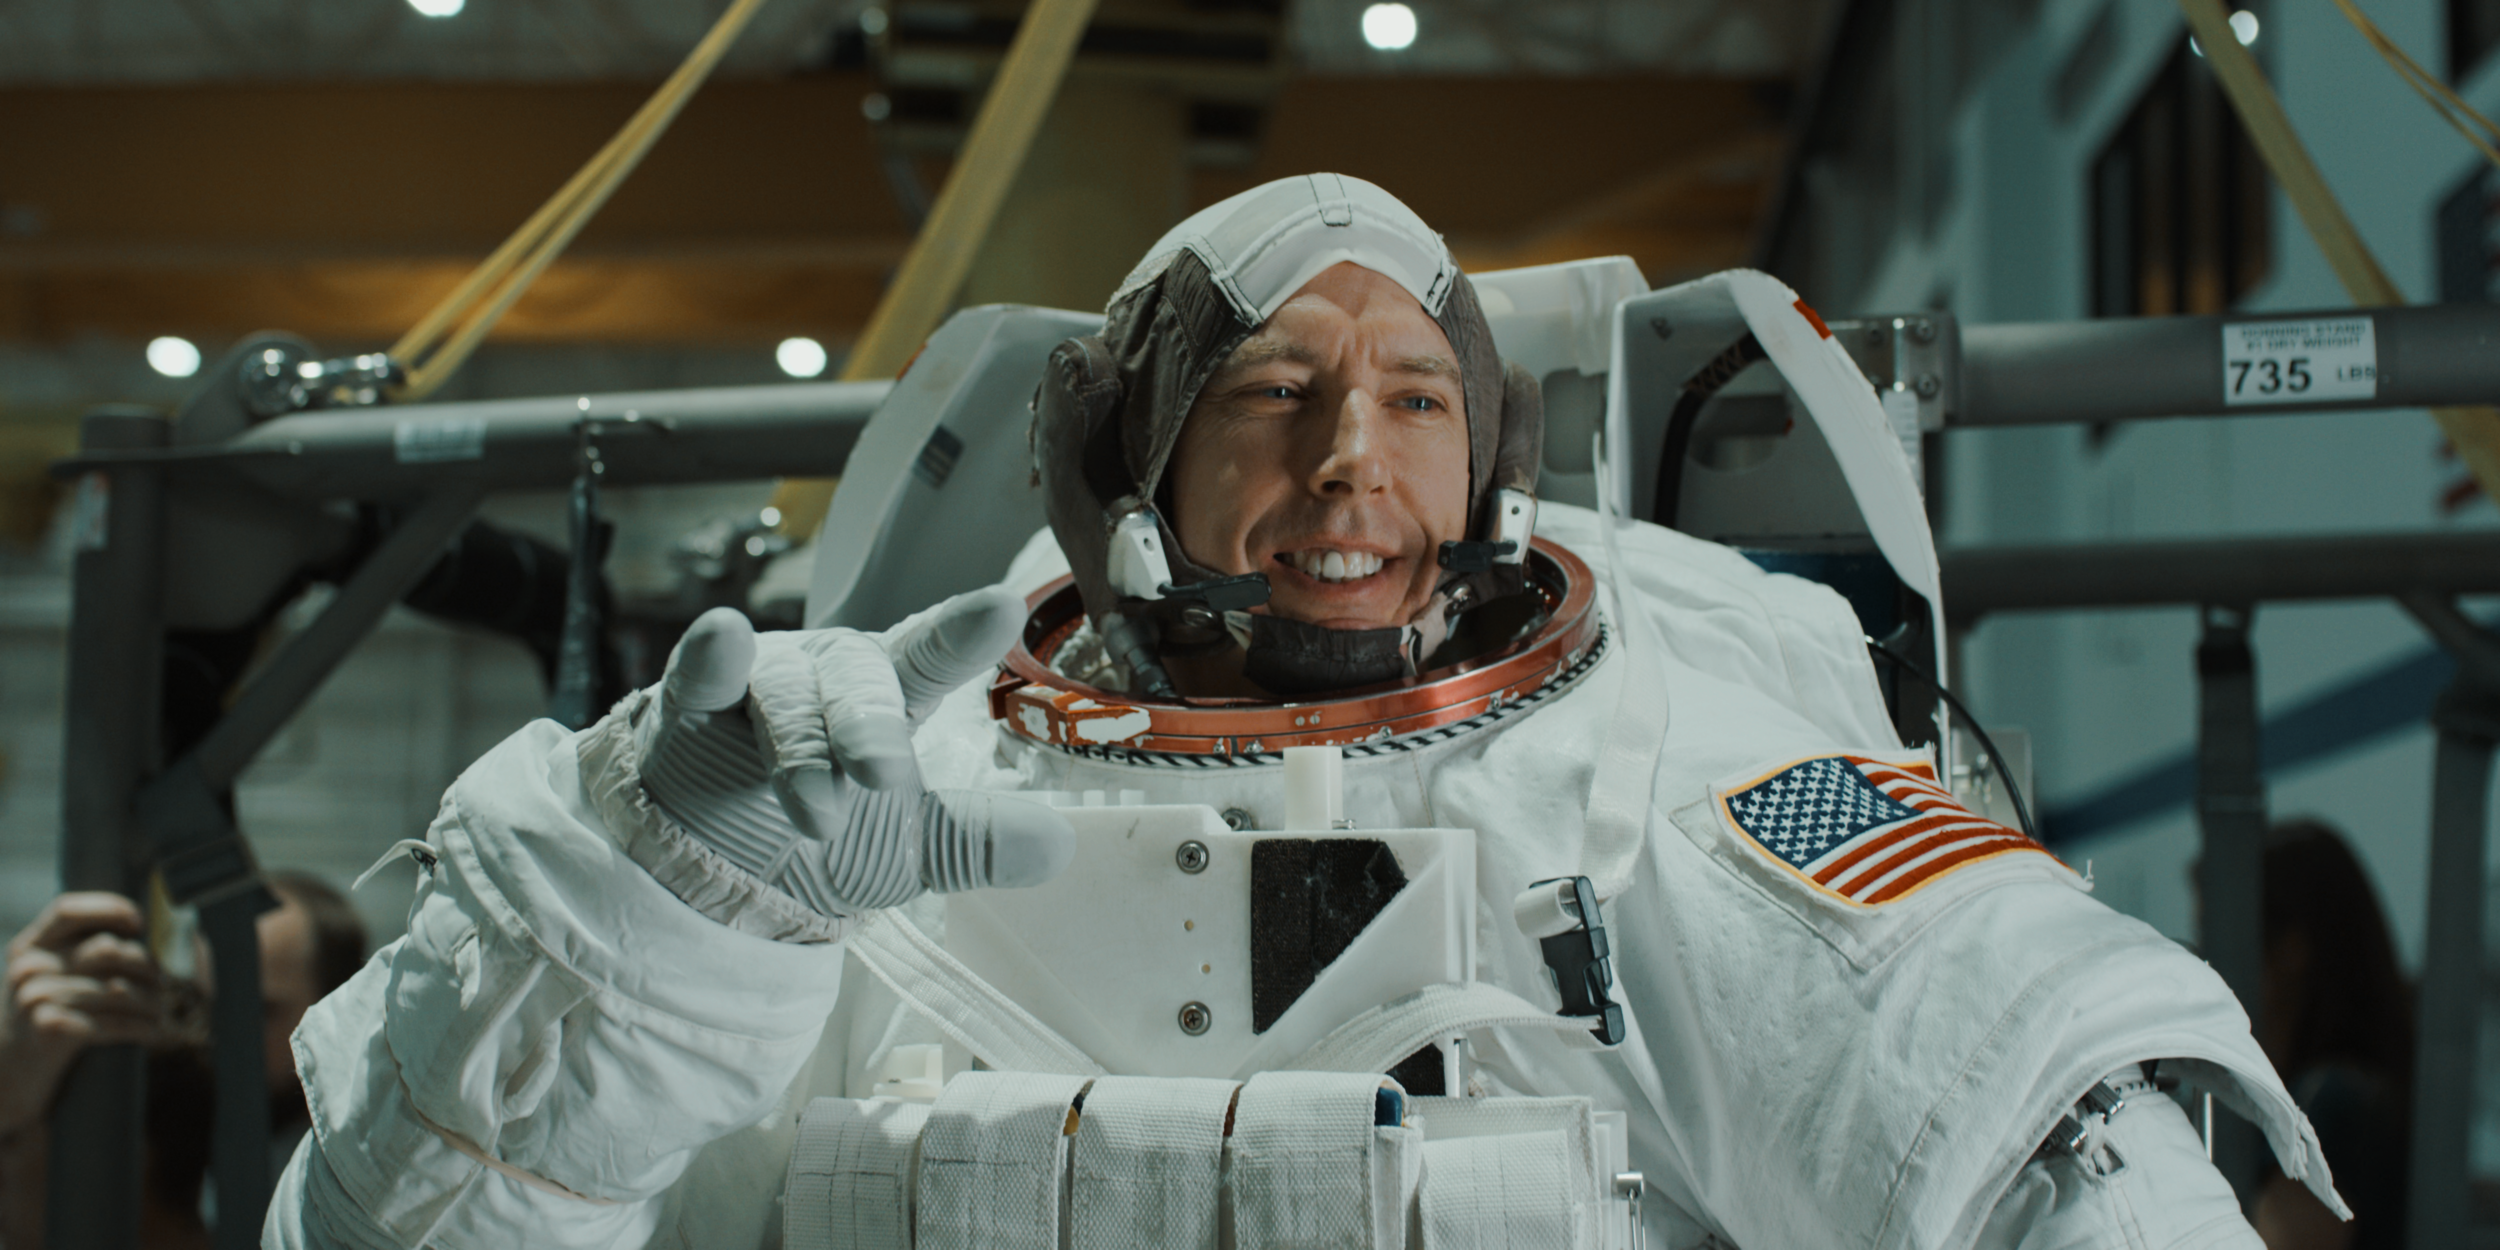 Queen's University - The Path to NASA - A film and series of content videos with Queen's Alumni and NASA Astronaut Drew Feustel